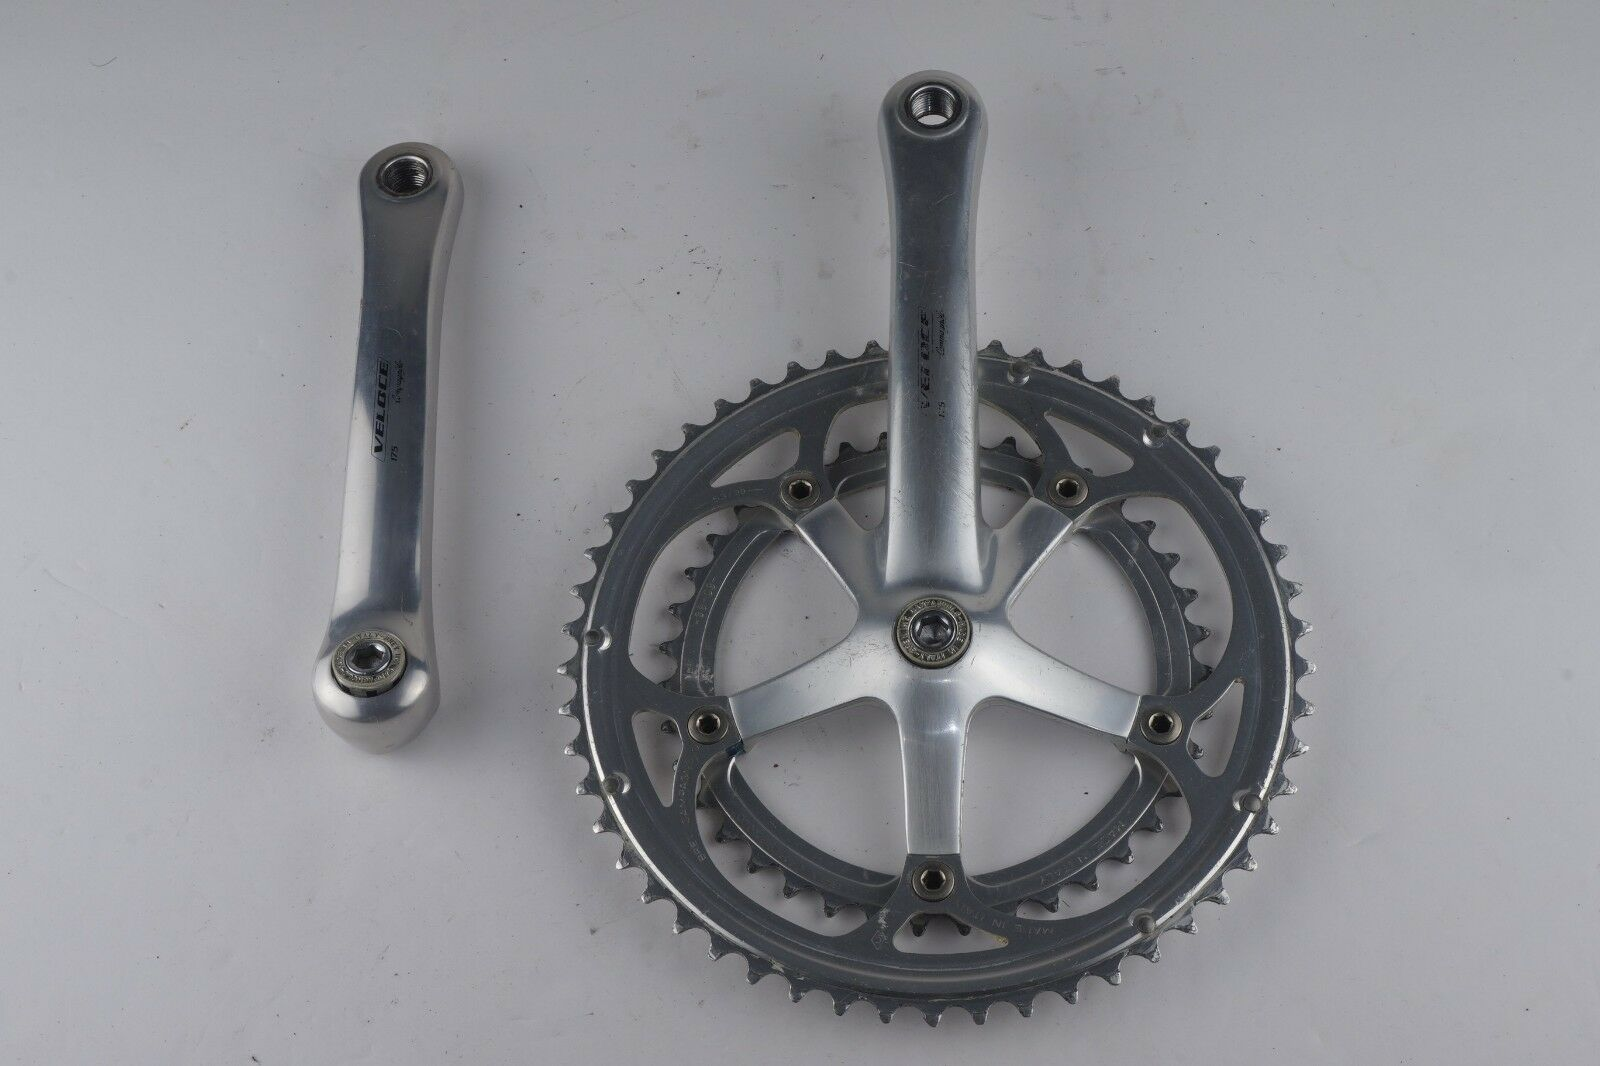 Campagnolo Veloce 9 Speed alloy double crankset 39 53 175mm square taper